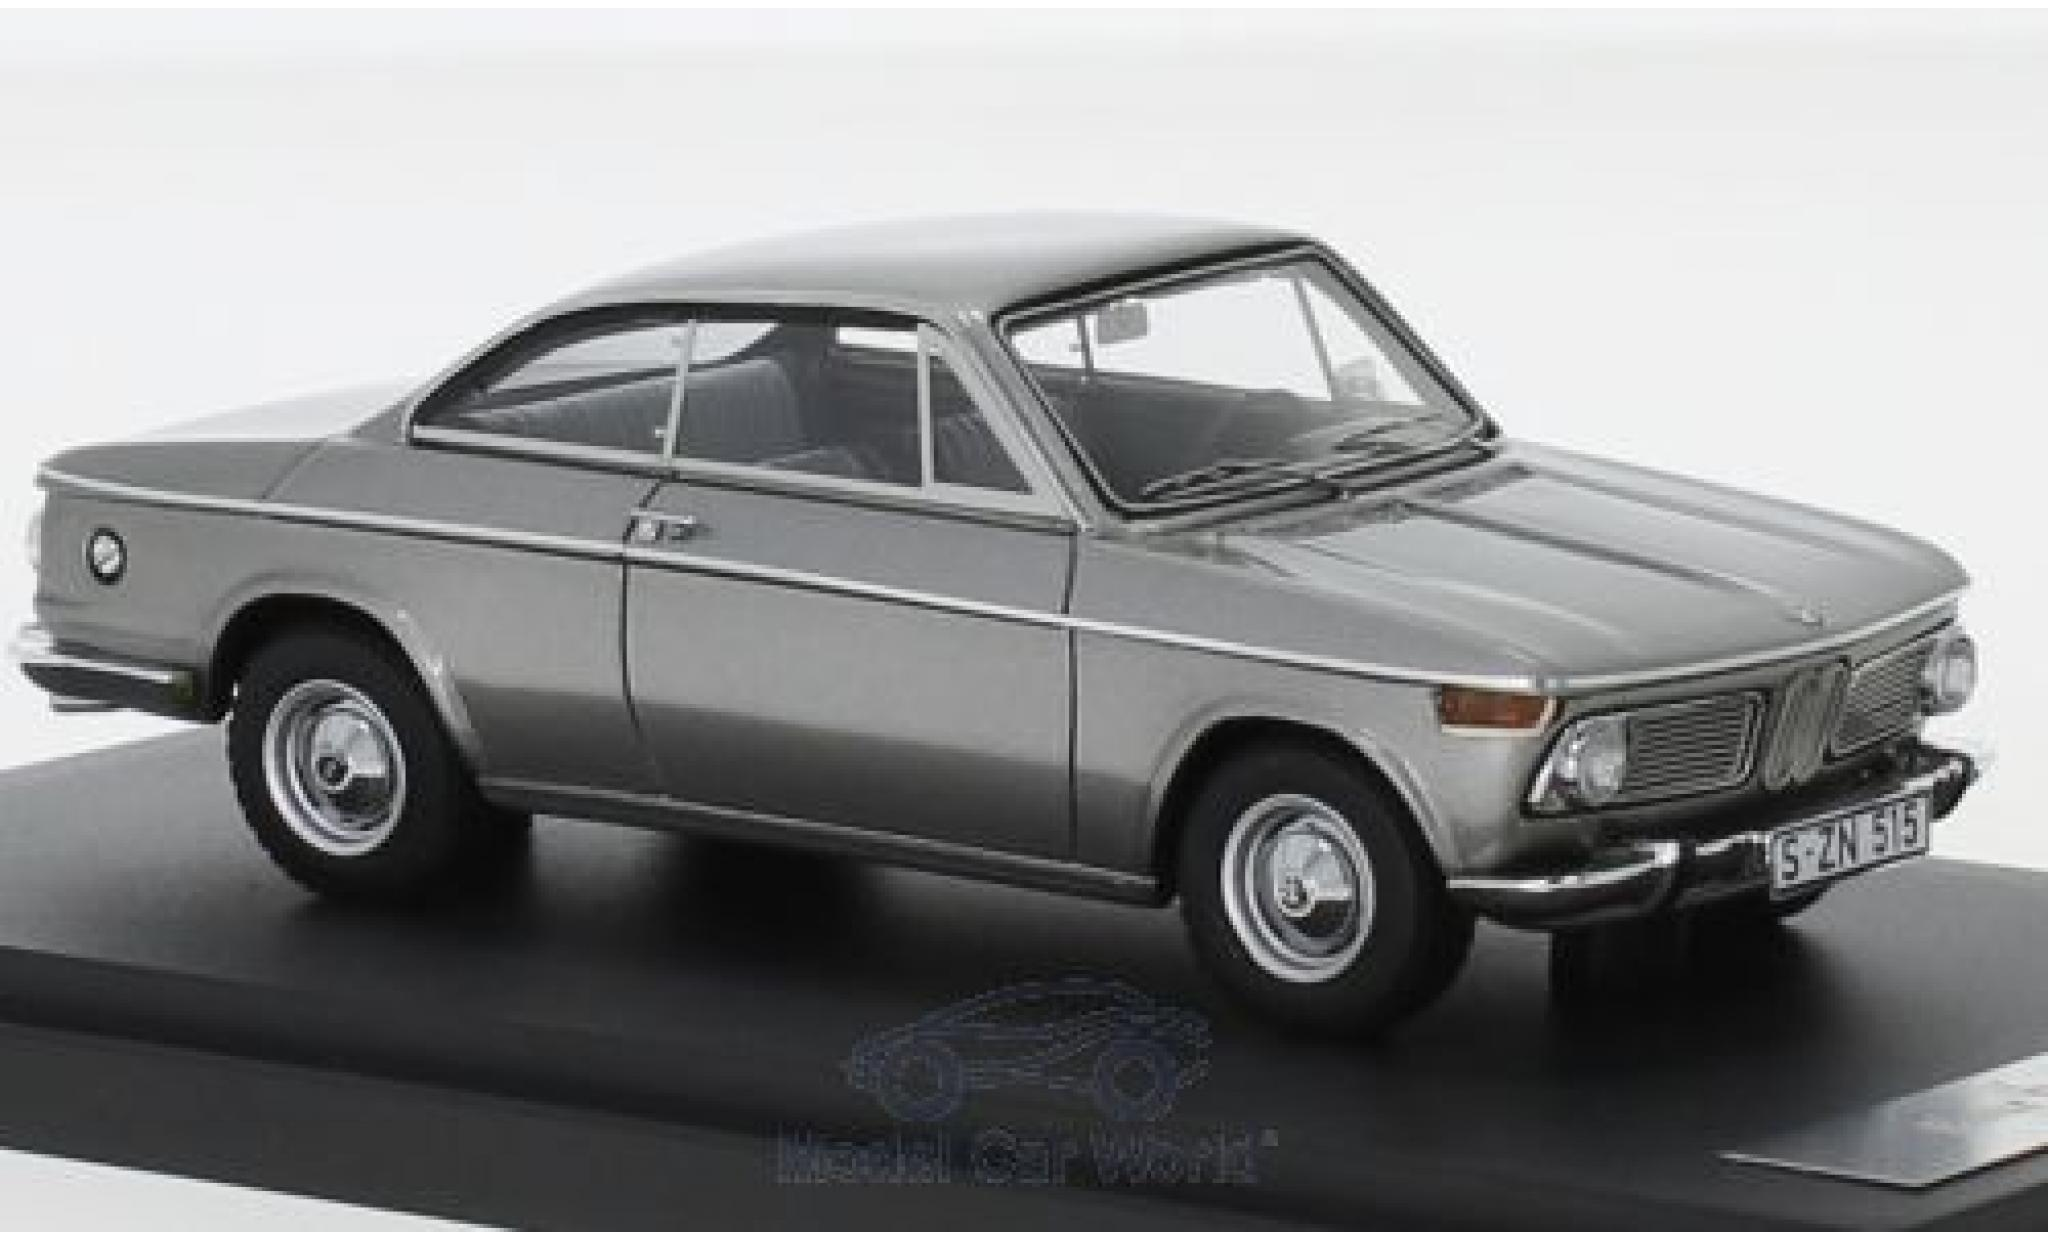 Bmw 1600 1/43 Matrix -2 Baur Coupe grey 1967